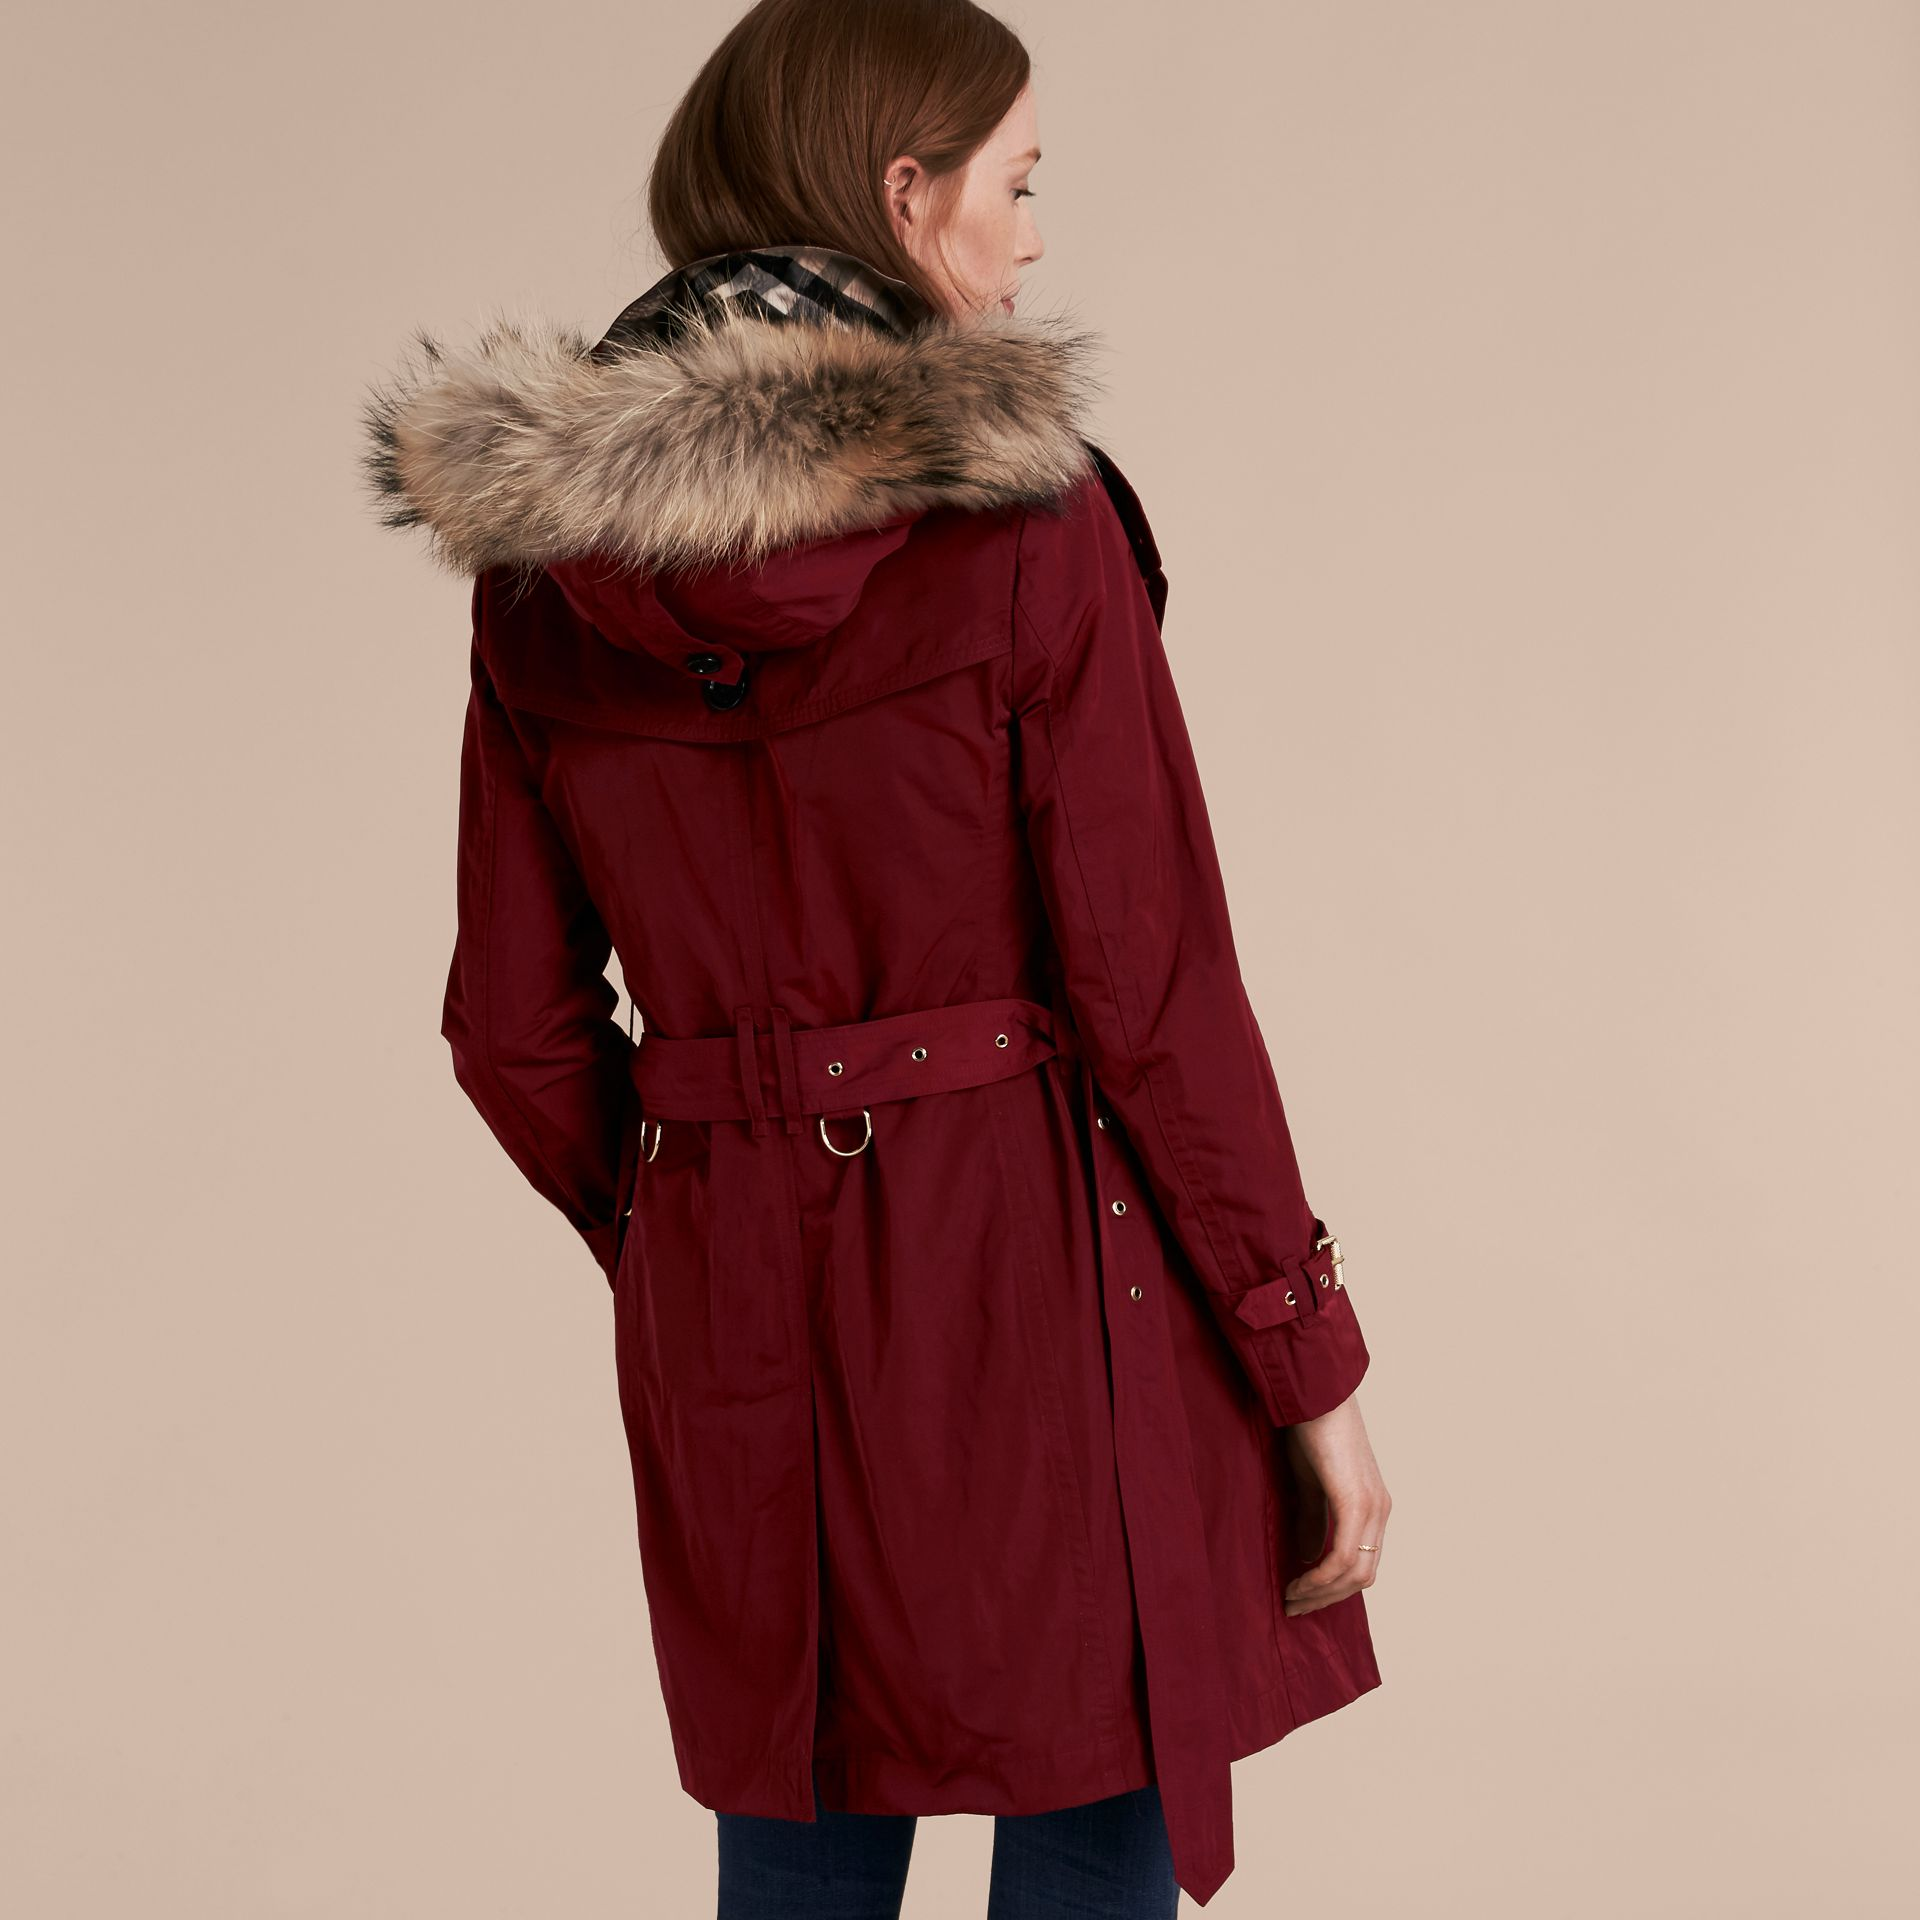 Garnet Fur-trimmed Hood Trench Coat with Detachable Gilet - gallery image 7